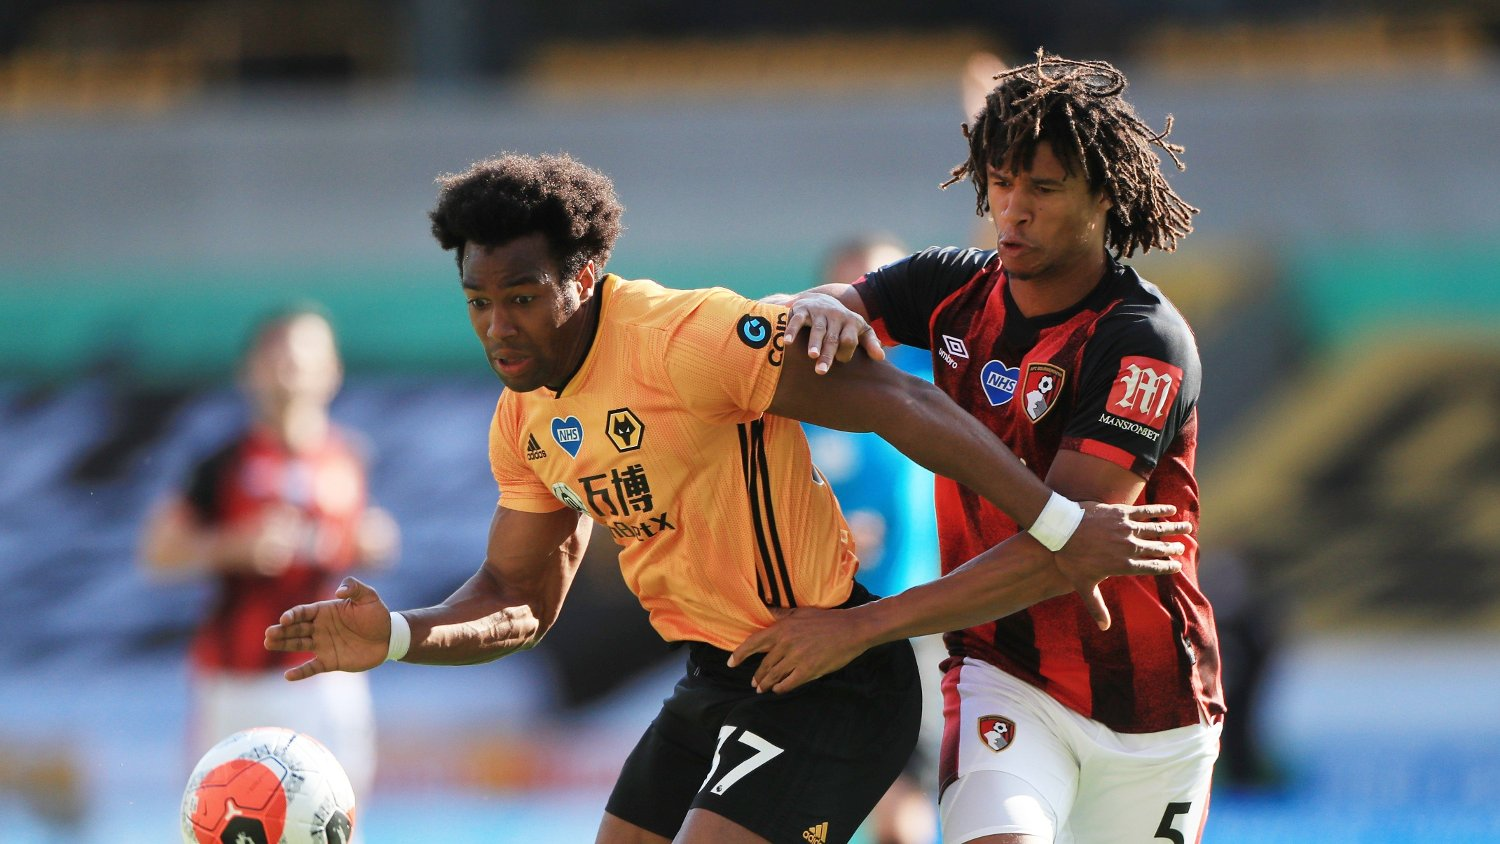 Soccer Football - Premier League - Wolverhampton Wanderers v AFC Bournemouth - Molineux Stadium, Wolverhampton, Britain - June 24, 2020 Wolverhampton Wanderers' Adama Traore in action with Bournemouth's Nathan Ake, as play resumes behind closed doors following the outbreak of the coronavirus disease Mike Egerton/Pool via REUTERS EDITORIAL USE ONLY. No use with unauthorized audio, video, data, fixture lists, club/league logos or